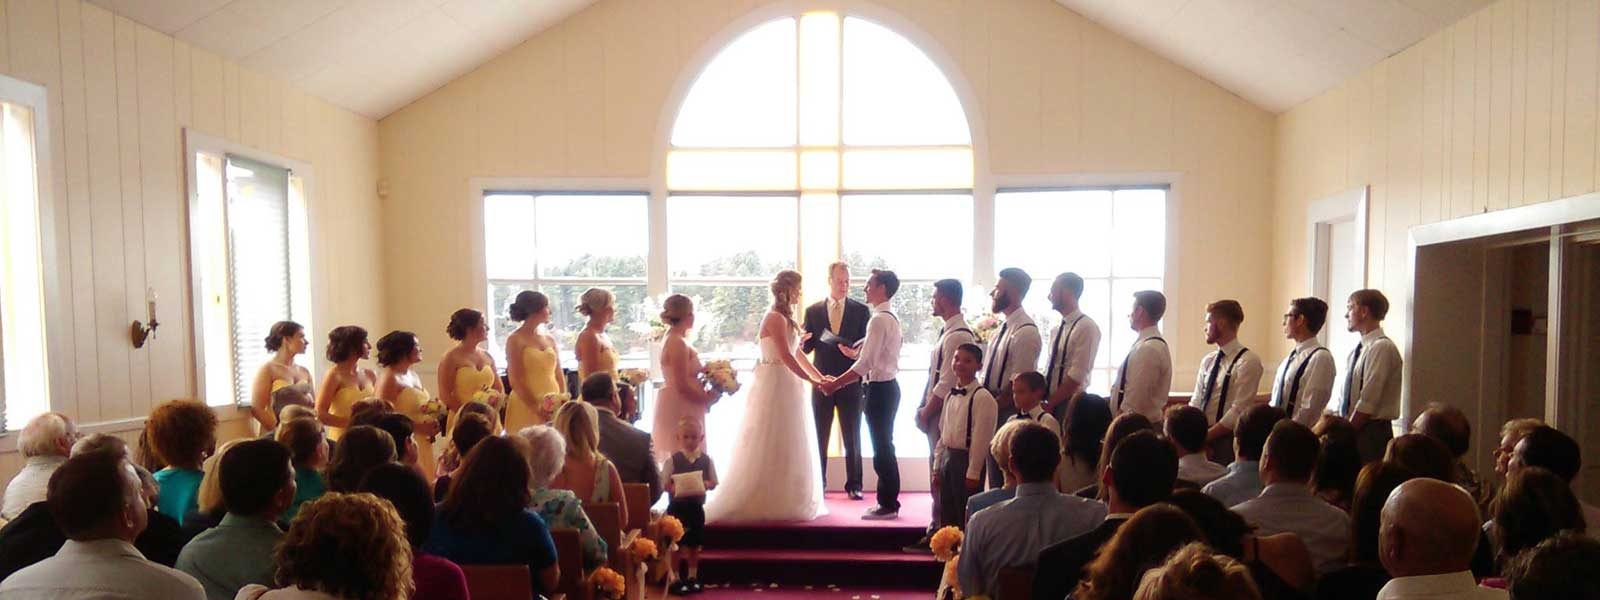 Weddings in the Chapel